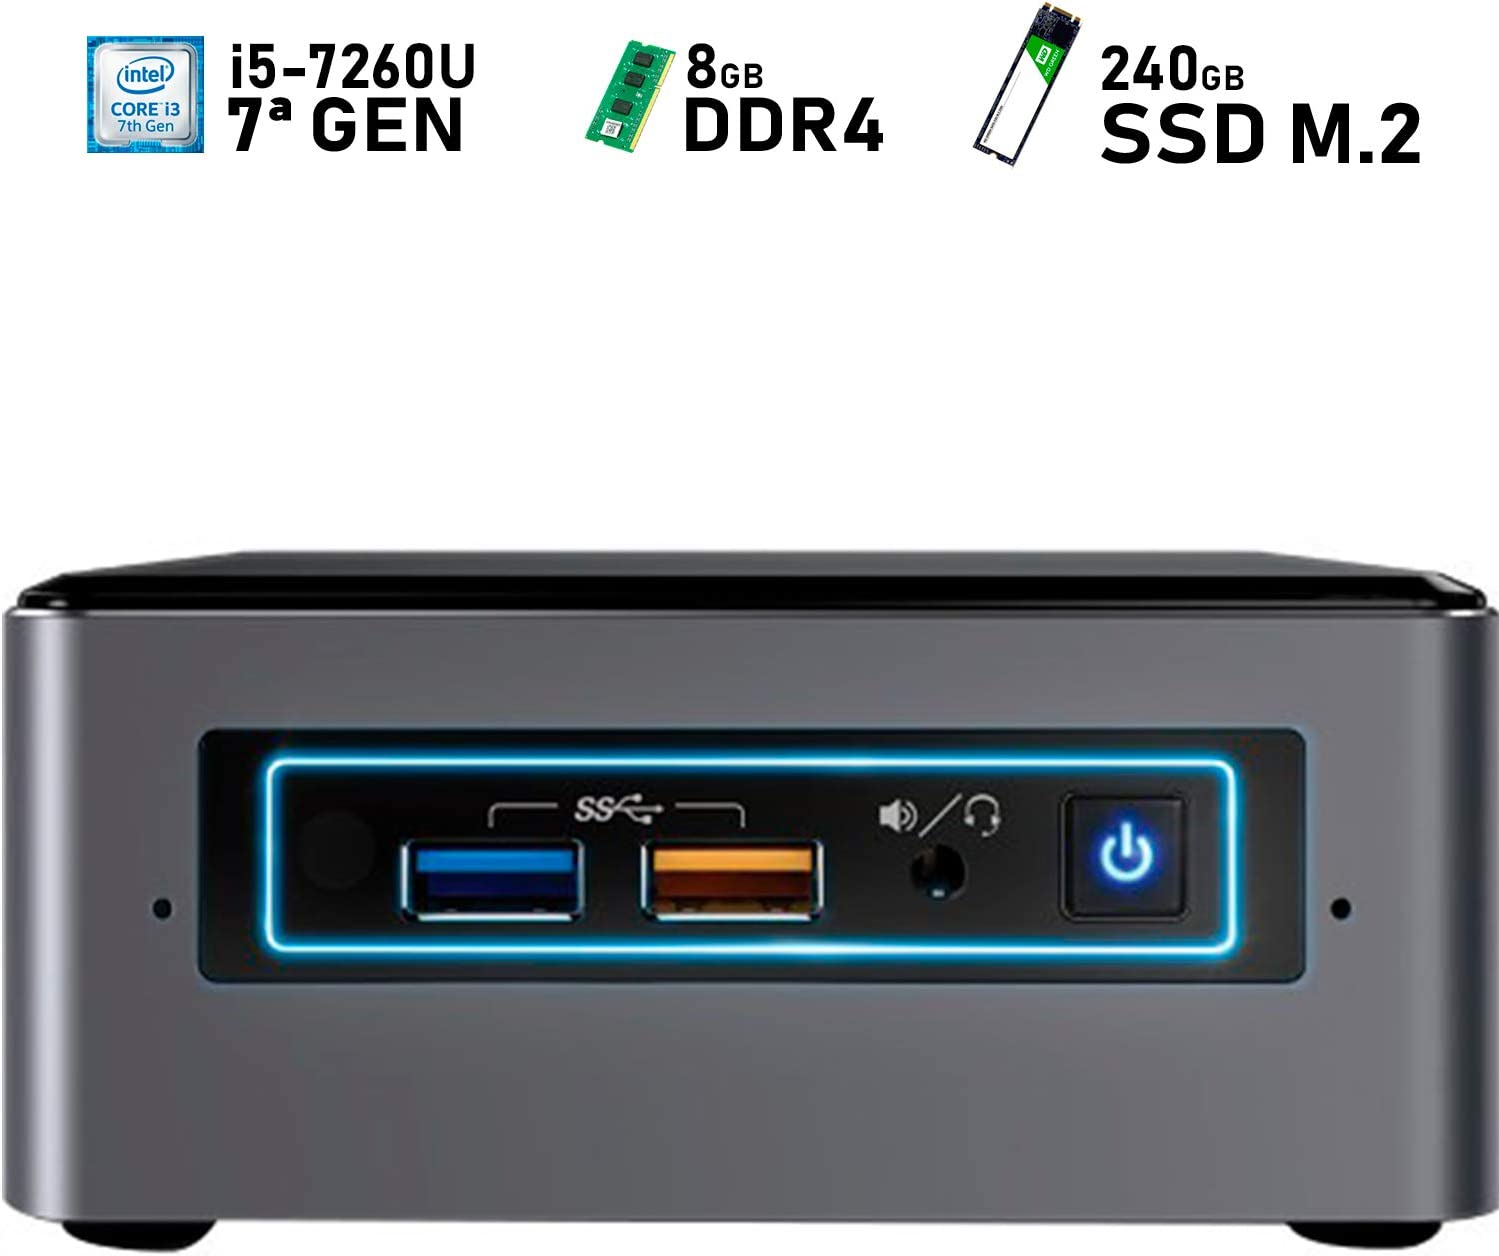 Intel NUC i5-7260U + 8GB DDR4 + 240GB SSD M.2 + Windows 10 Pro ...